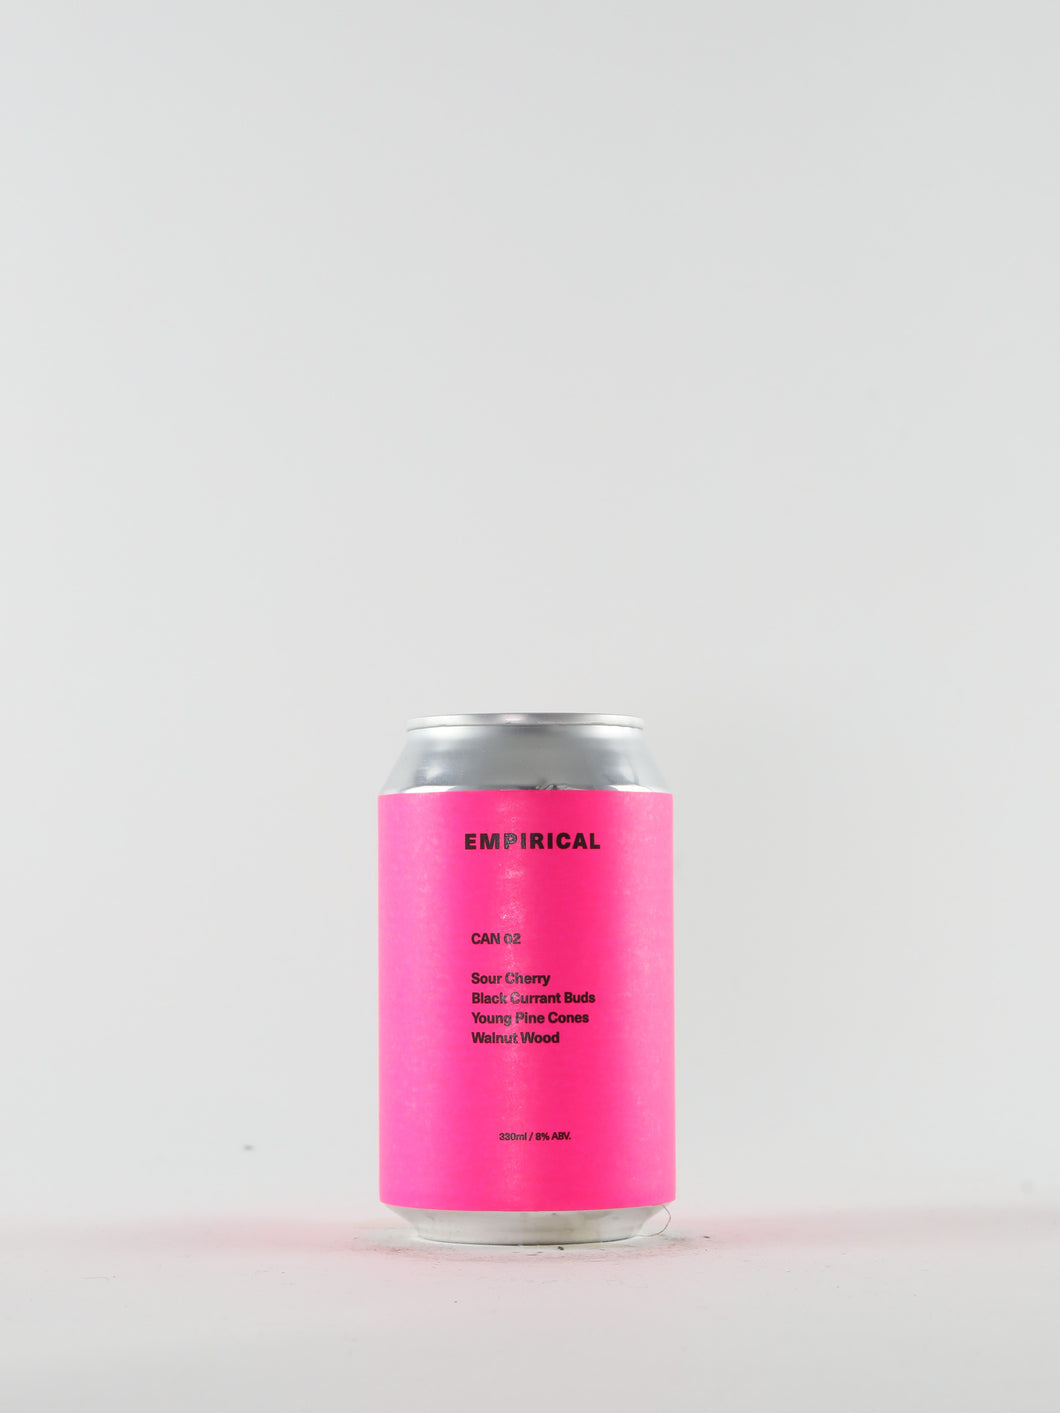 CAN 02 (SOUR CHERRY) - Empirical Spirits